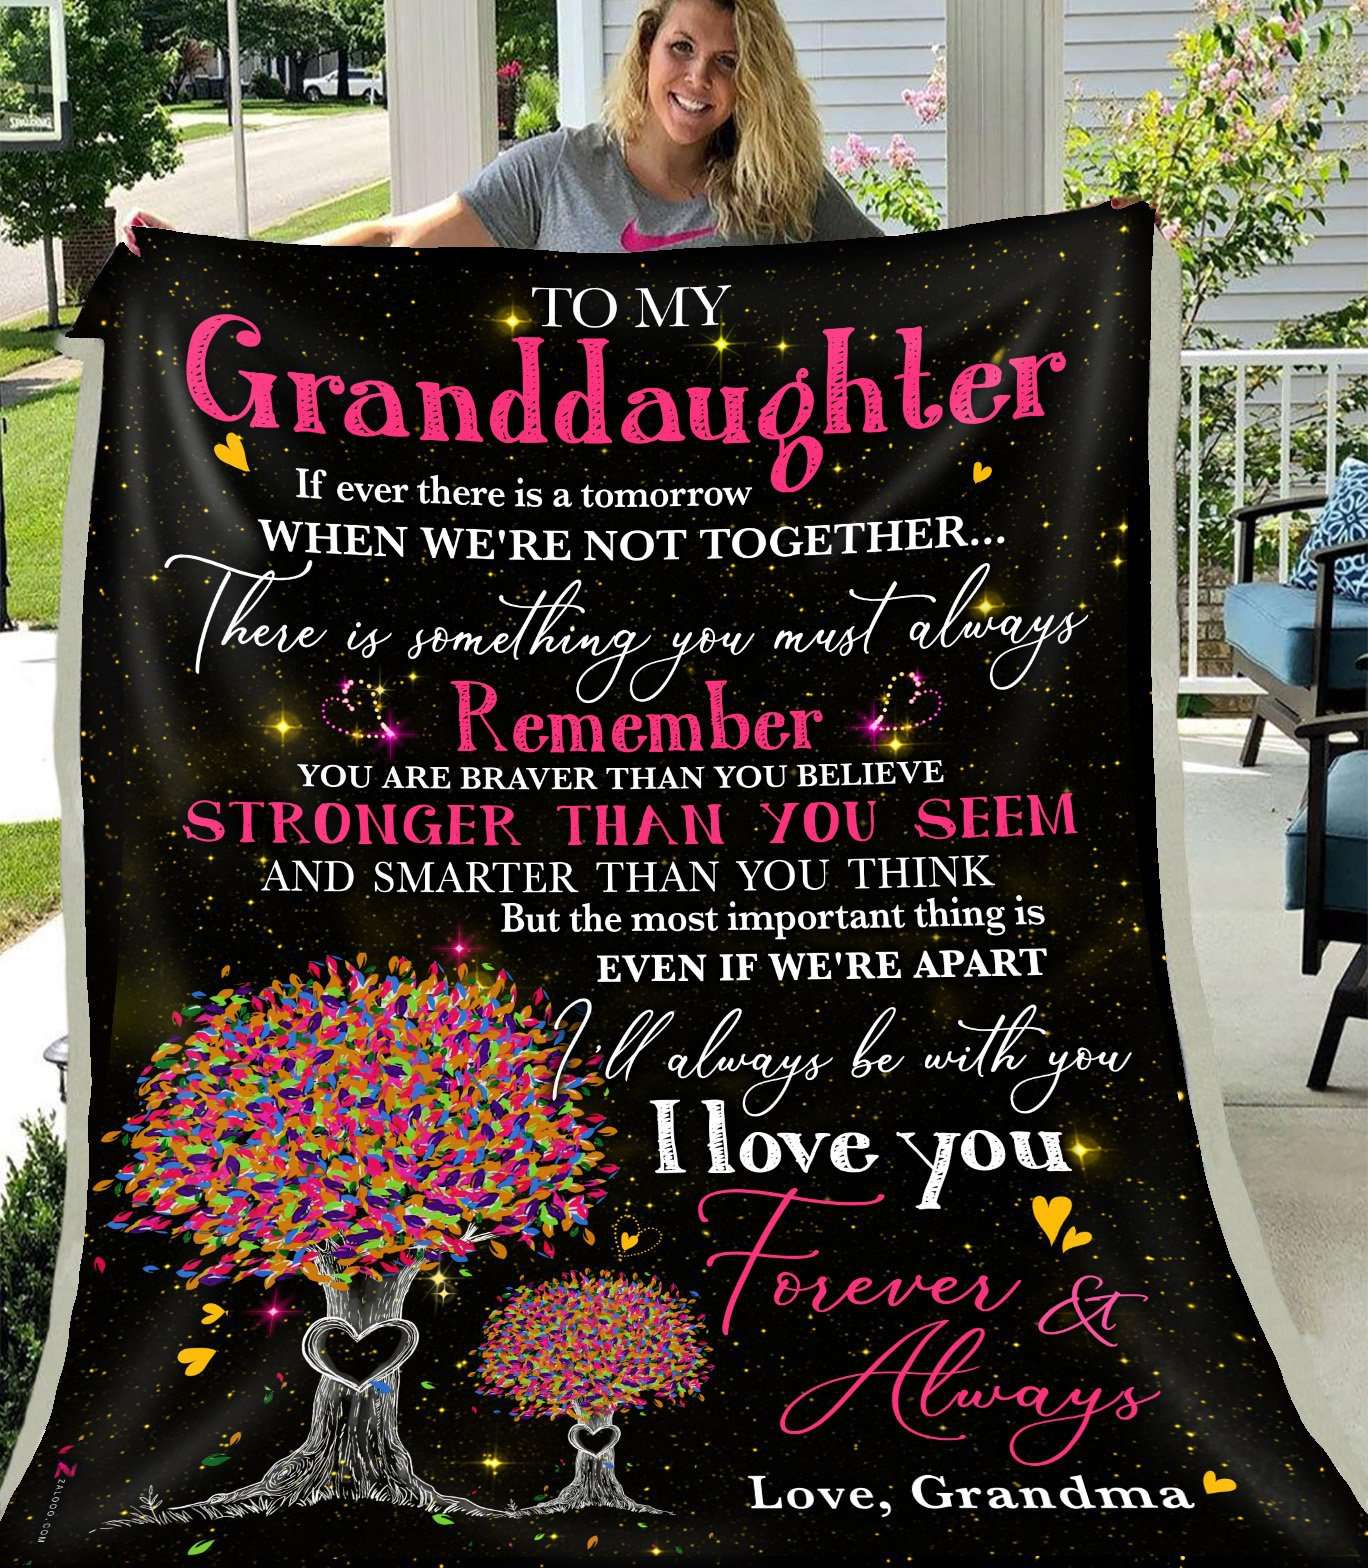 GRANDDAUGHTER Grandma - If ever there is a tomorrow - 1